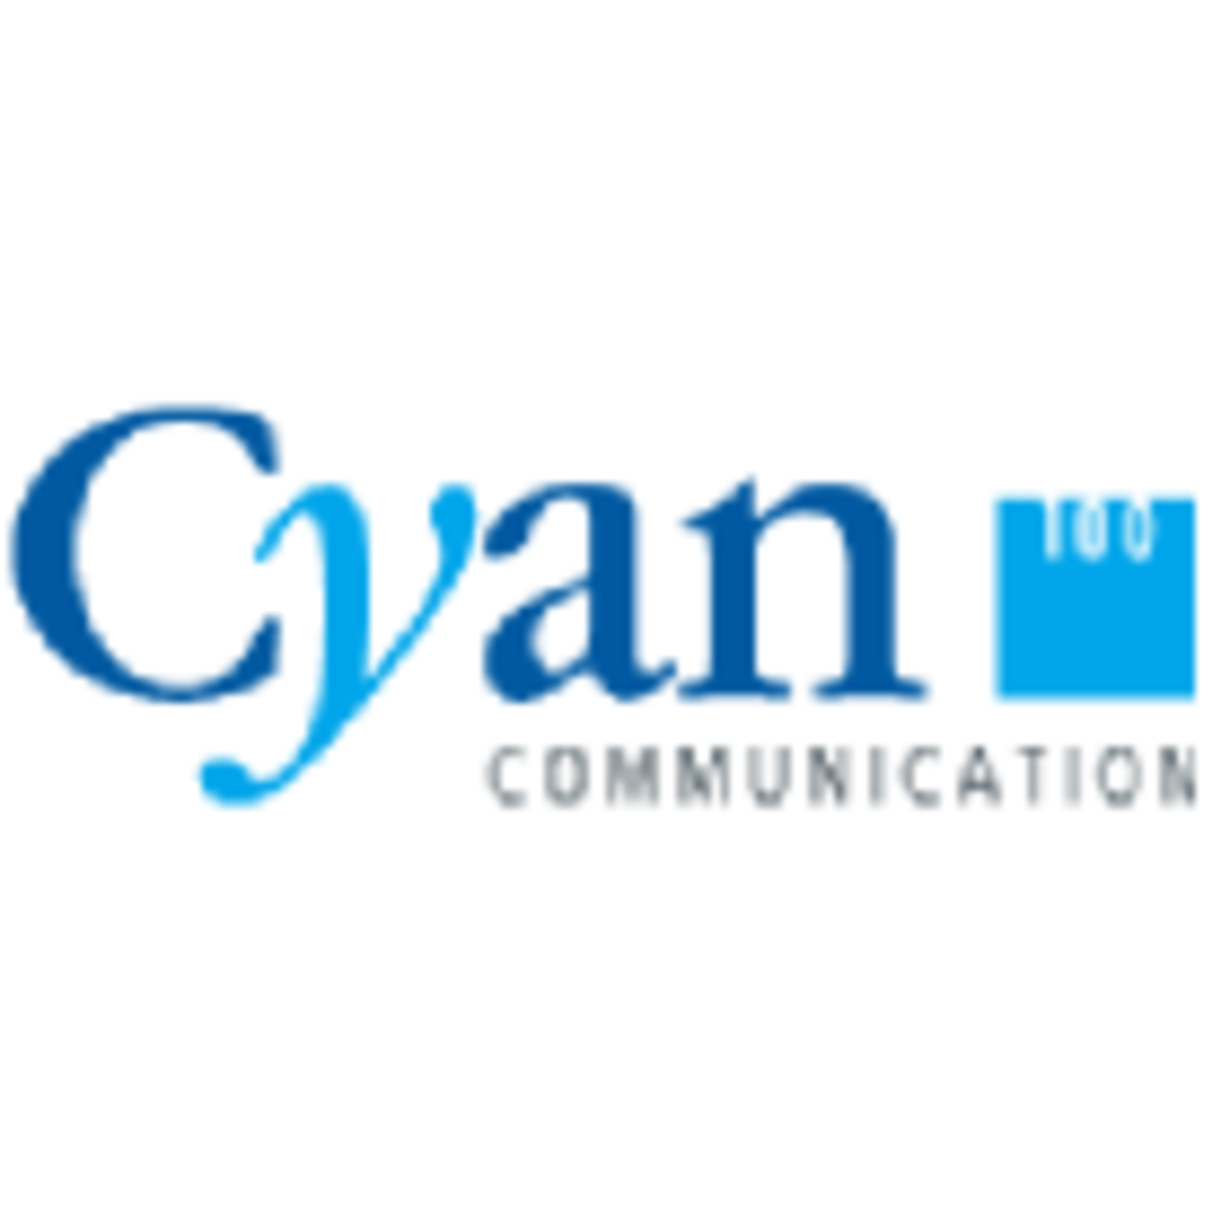 cyan communication